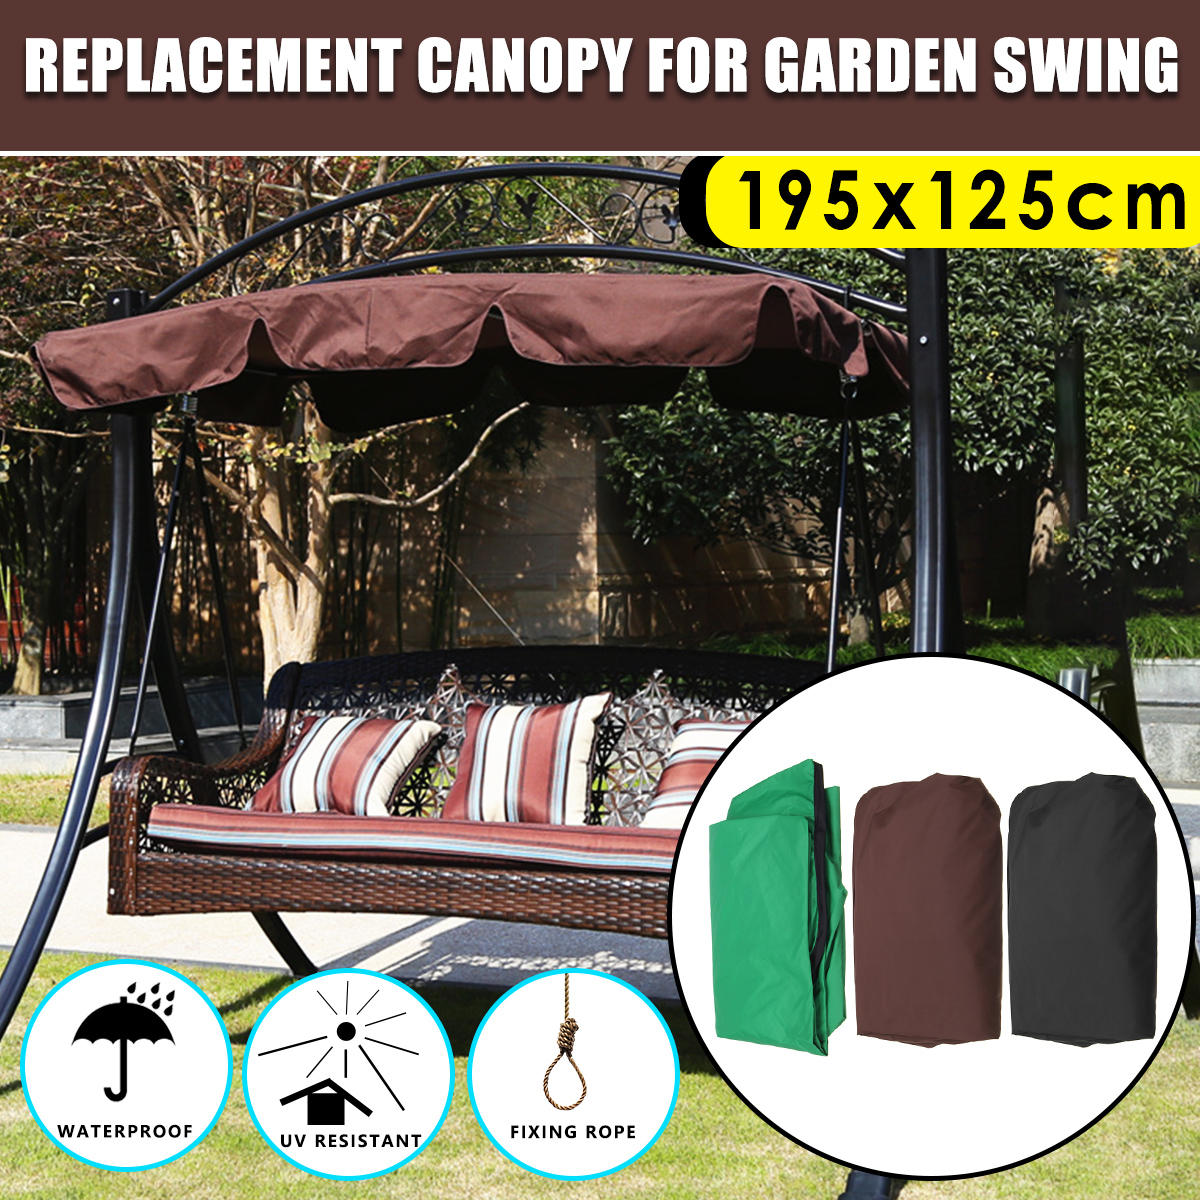 Swing Chair Canopy Replacement Patio Reclining Summer Awning Waterproof Top Cover For Garden Courtyard Ourdoor Hammock